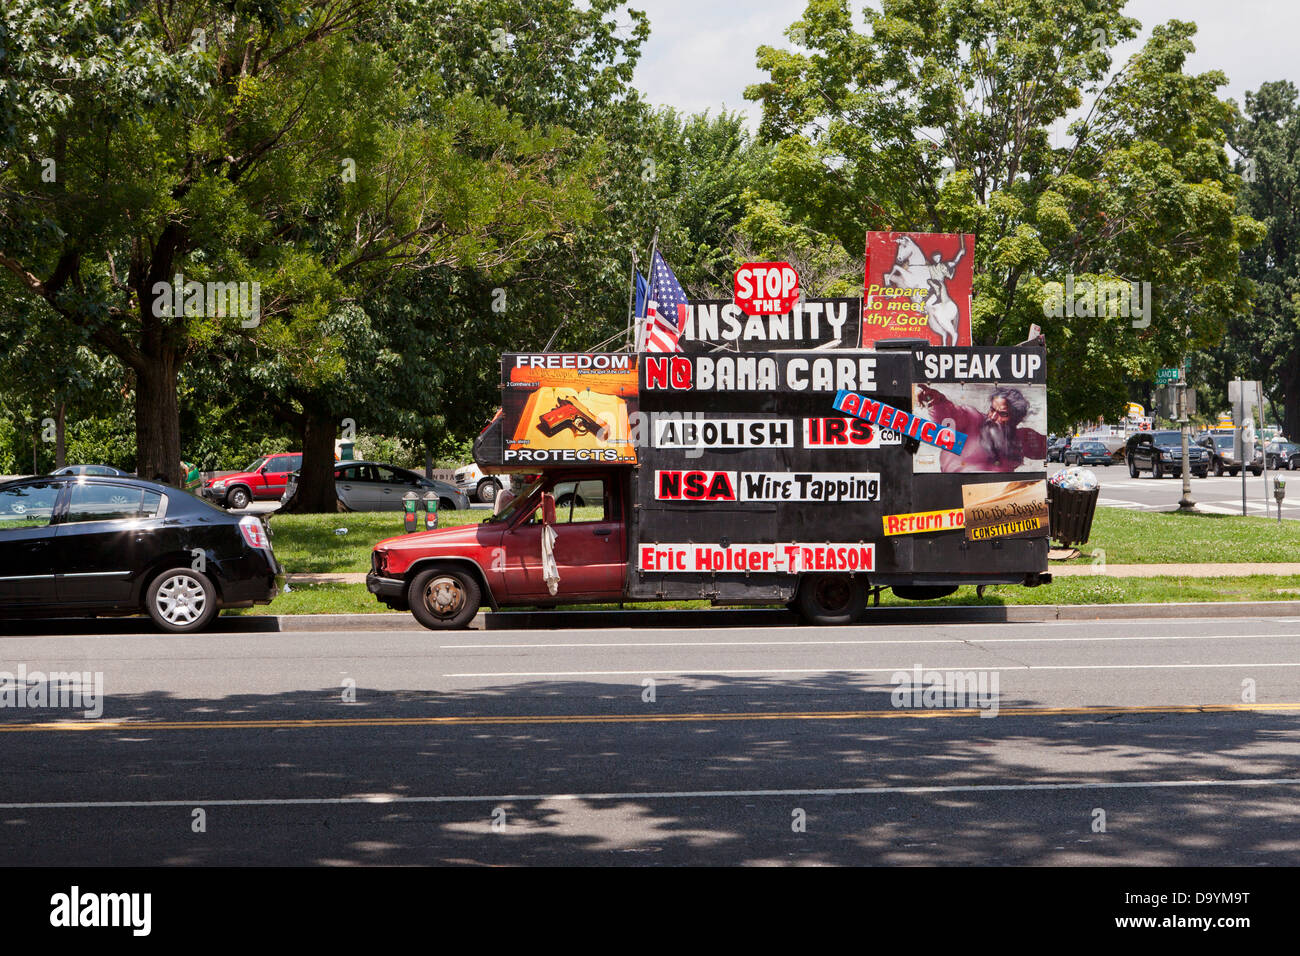 Car decorated with far-right political messages - Washington, DC - Stock Image